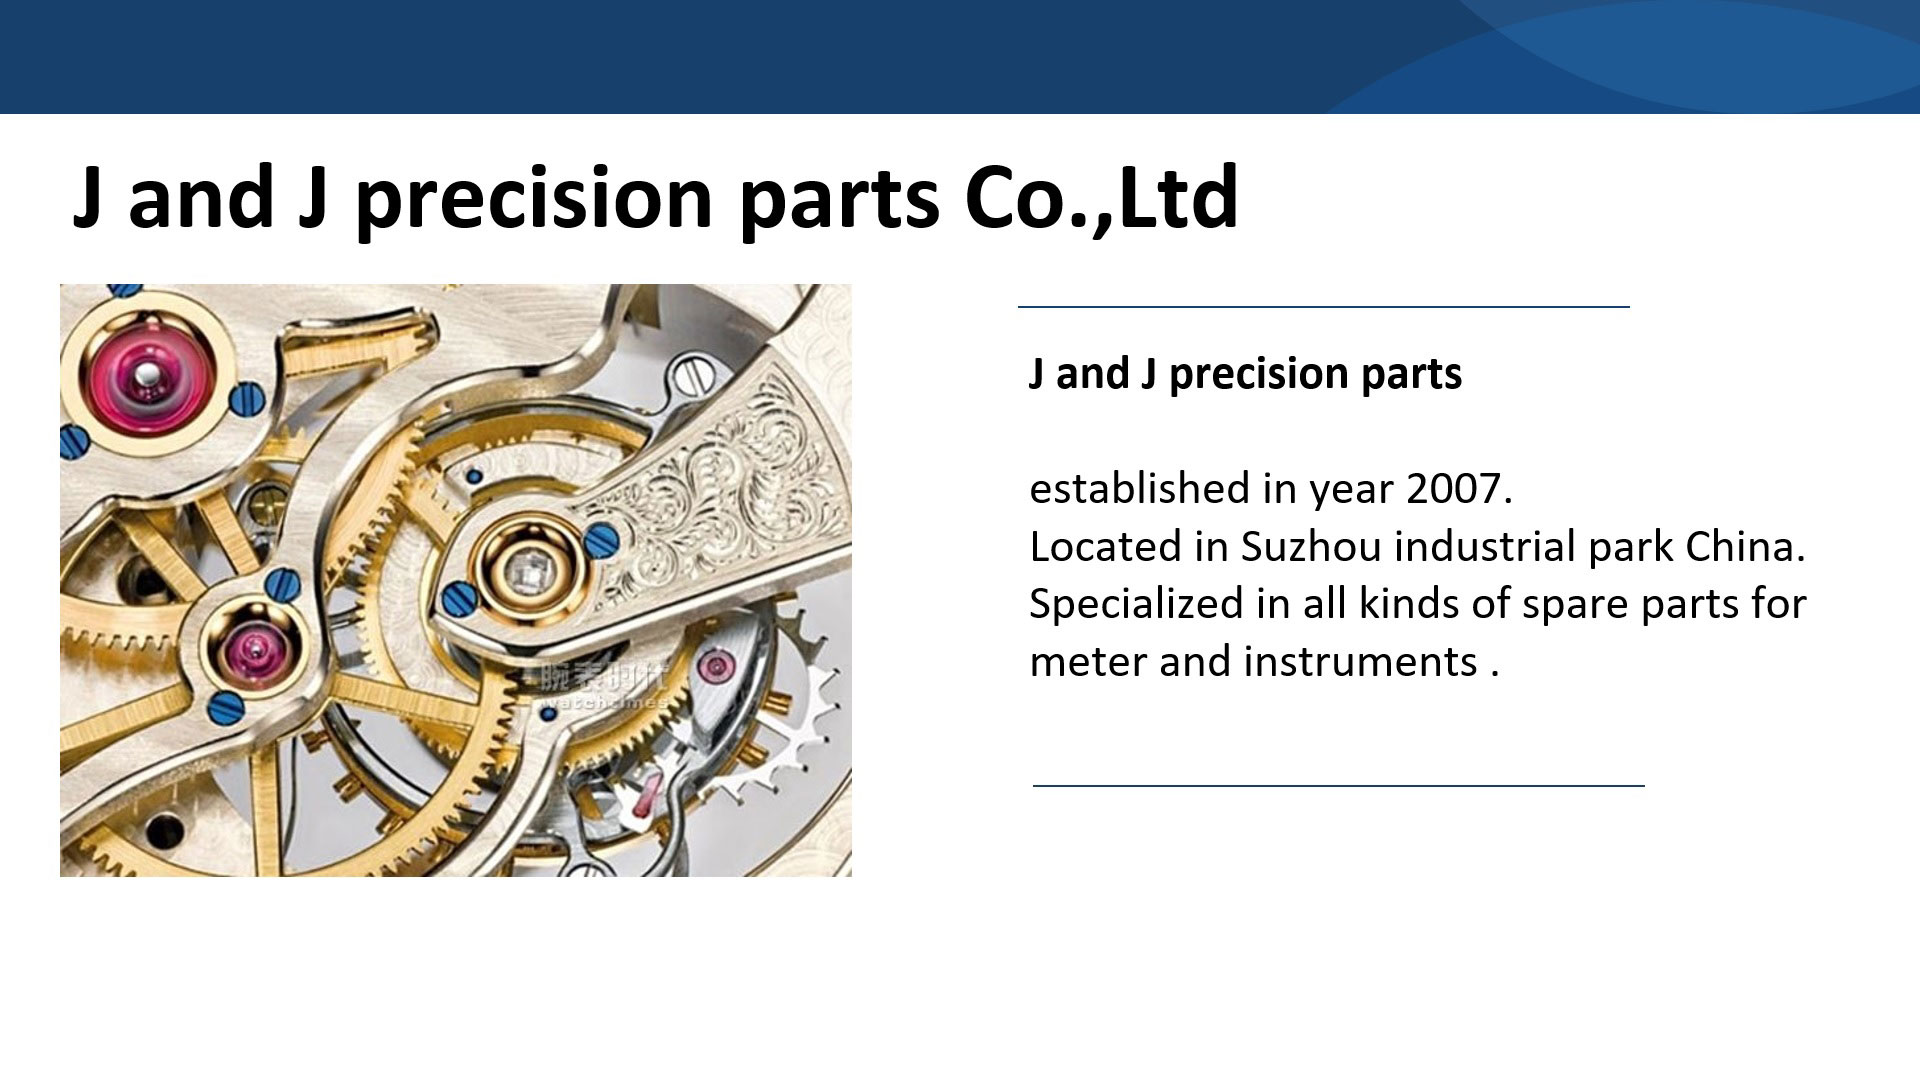 J and J precisionparts Co.,Ltd